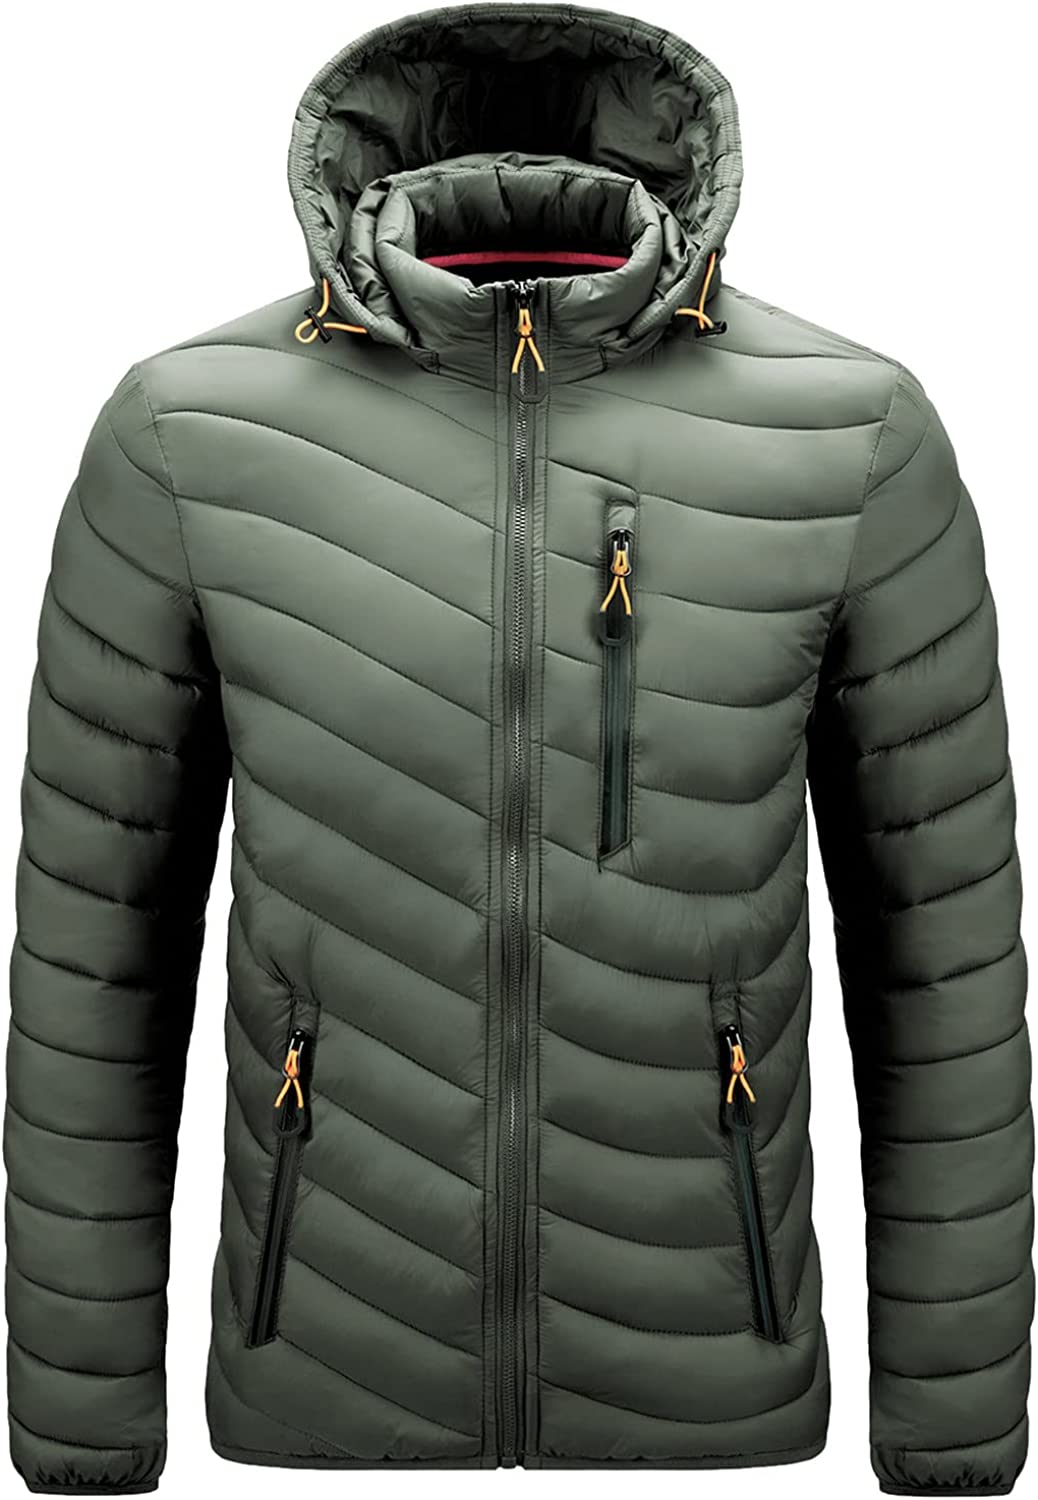 Down Jackets for Men Big and Tall Lightweight Packable Full-Zip Puffer Coat Hooded Feather Jackets Outwear